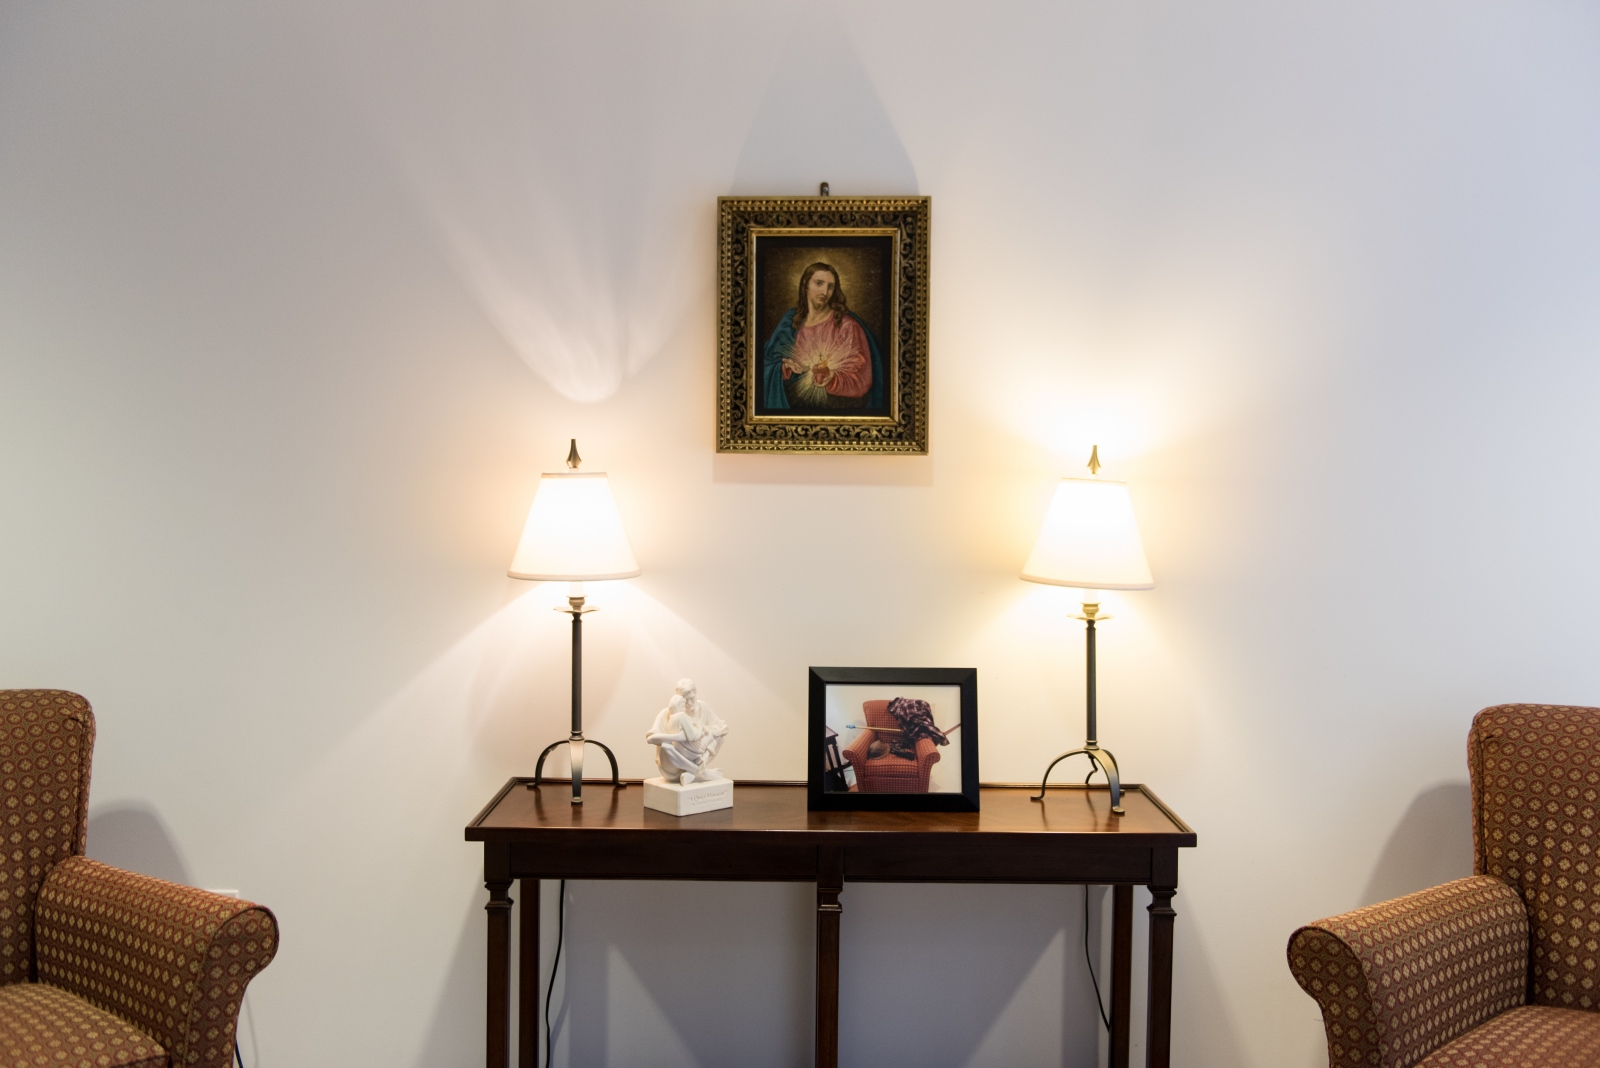 In the lobby of St. Alphonsus church in Wheeling, a picture of Jesus Christ hangs above a photograph of the empty seat adjacent to it where the church's long-time sacristan, Charlie Saad, often sat before he passed away. Several of the Wheeling area's Catholic churches have closed over the past few decades.